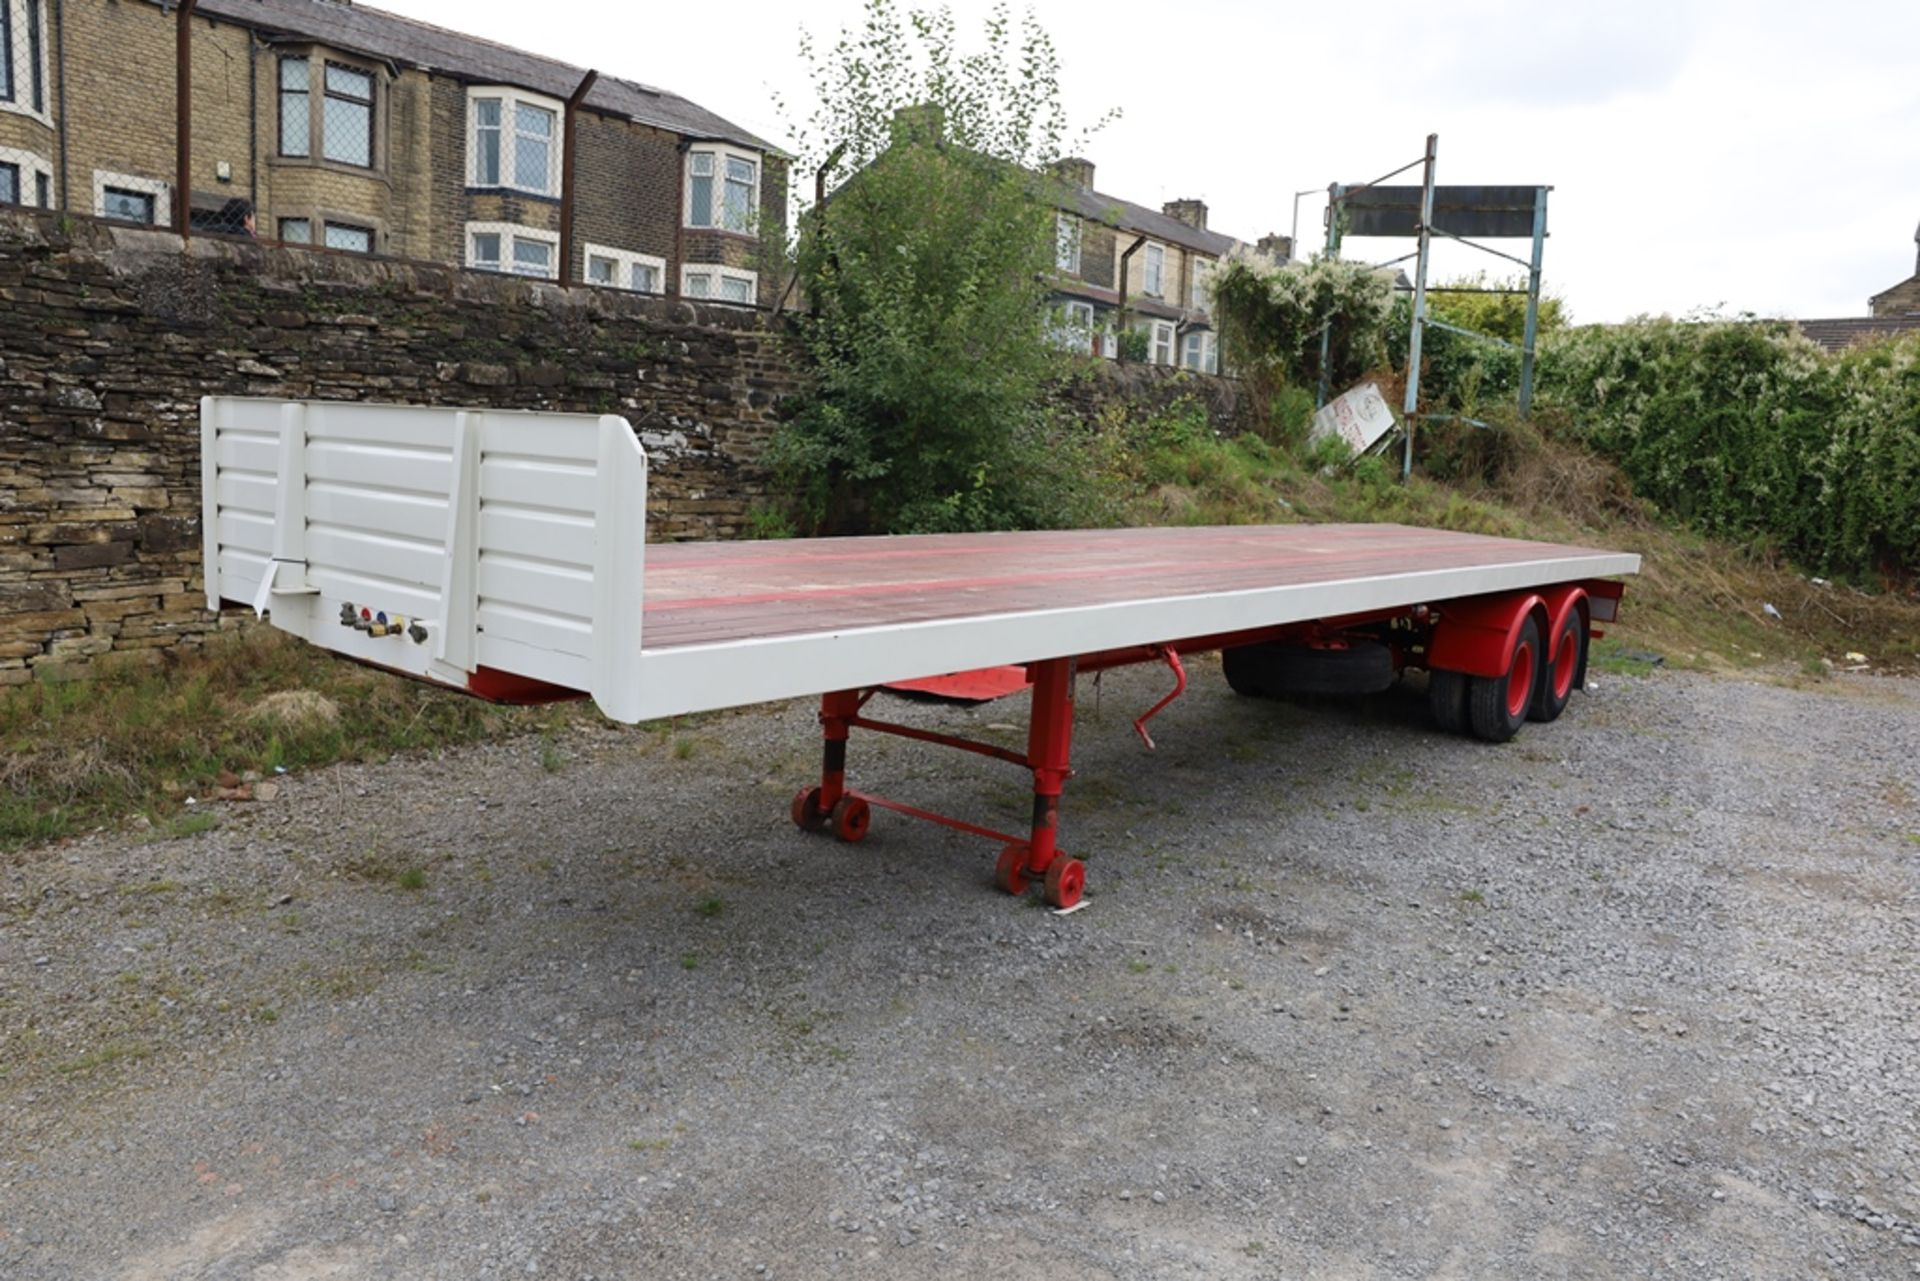 York SL 36 W/S 36ft Tandem Axle Timber Board Flat Semi Trailer, year of manufacture 1971, vendors